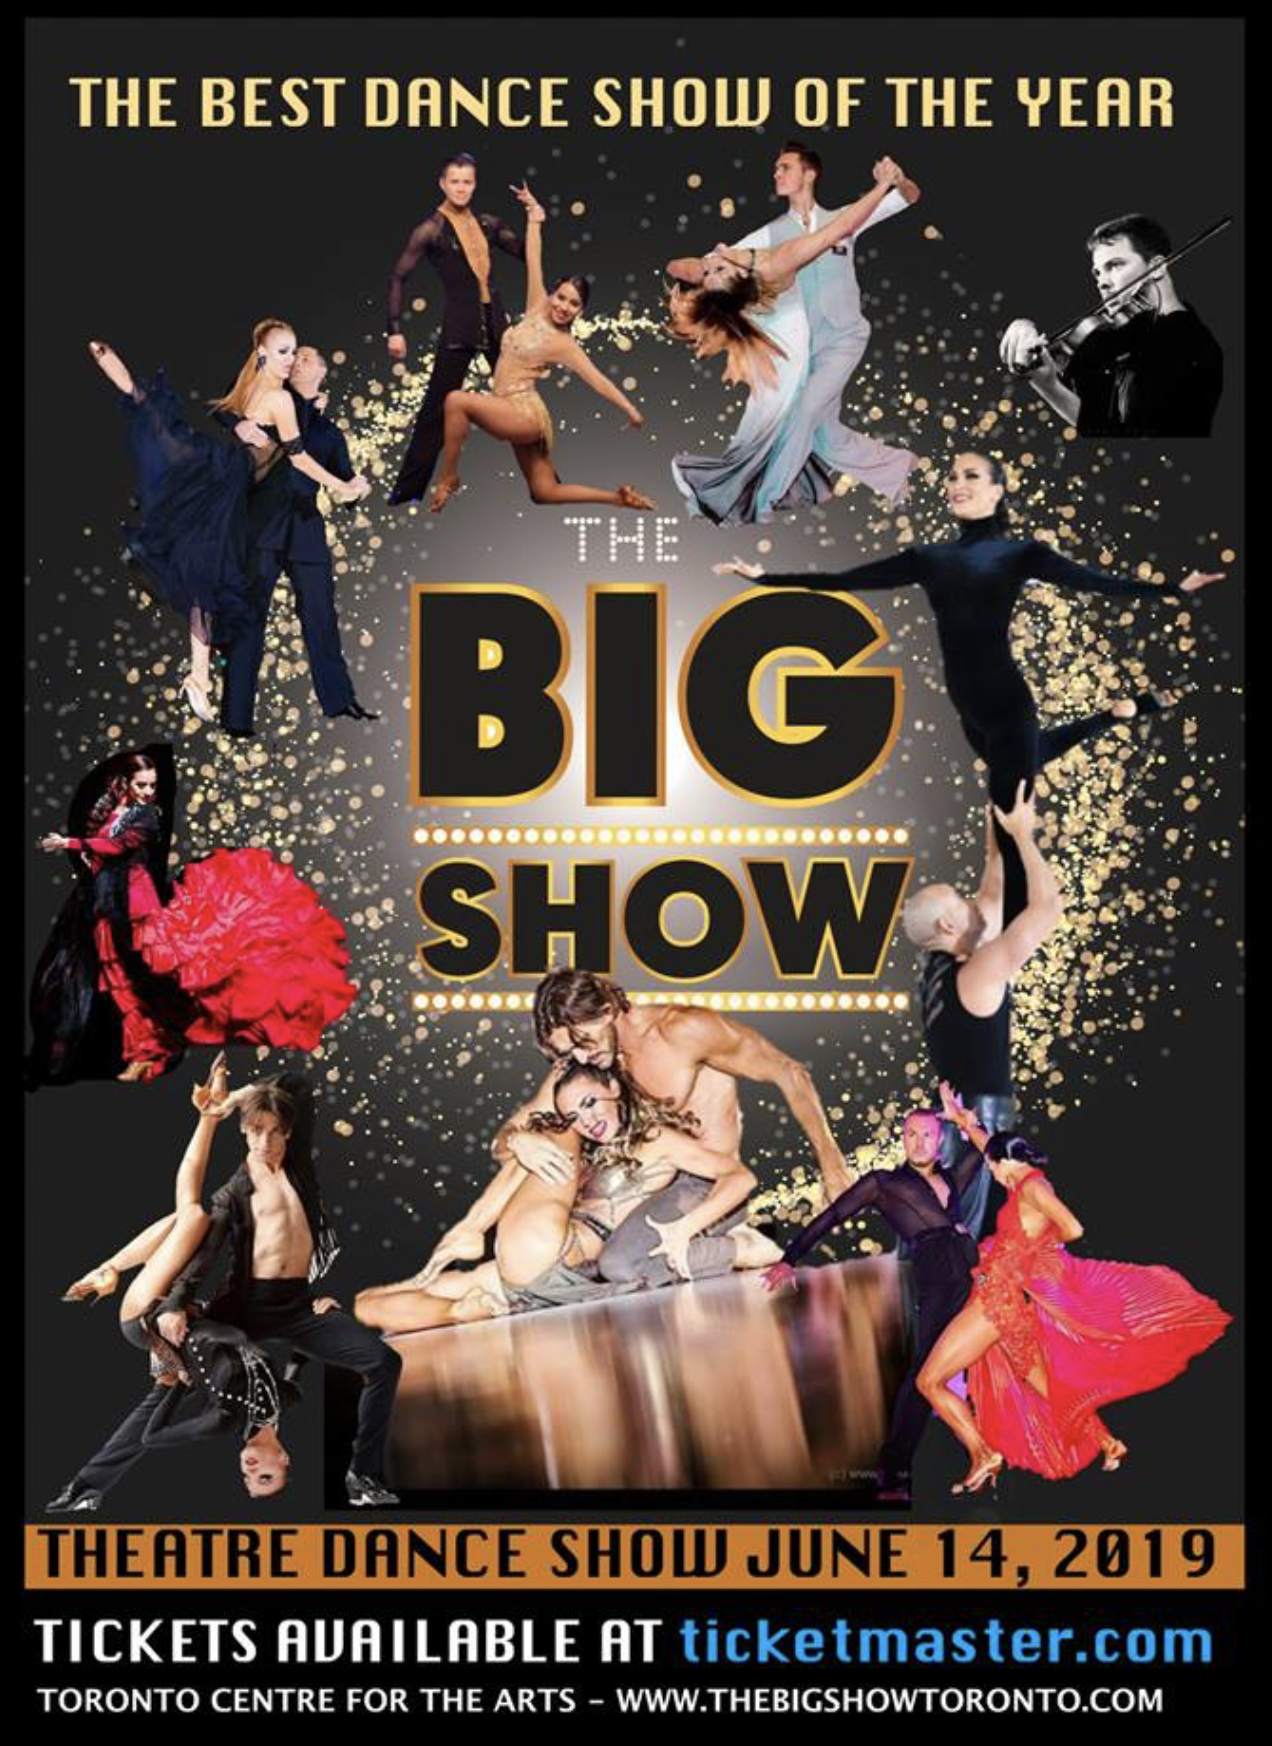 THANK YOU The BIG SHOW for supporting YEAR6 UNESCO International Dance Day SHOWCASE>